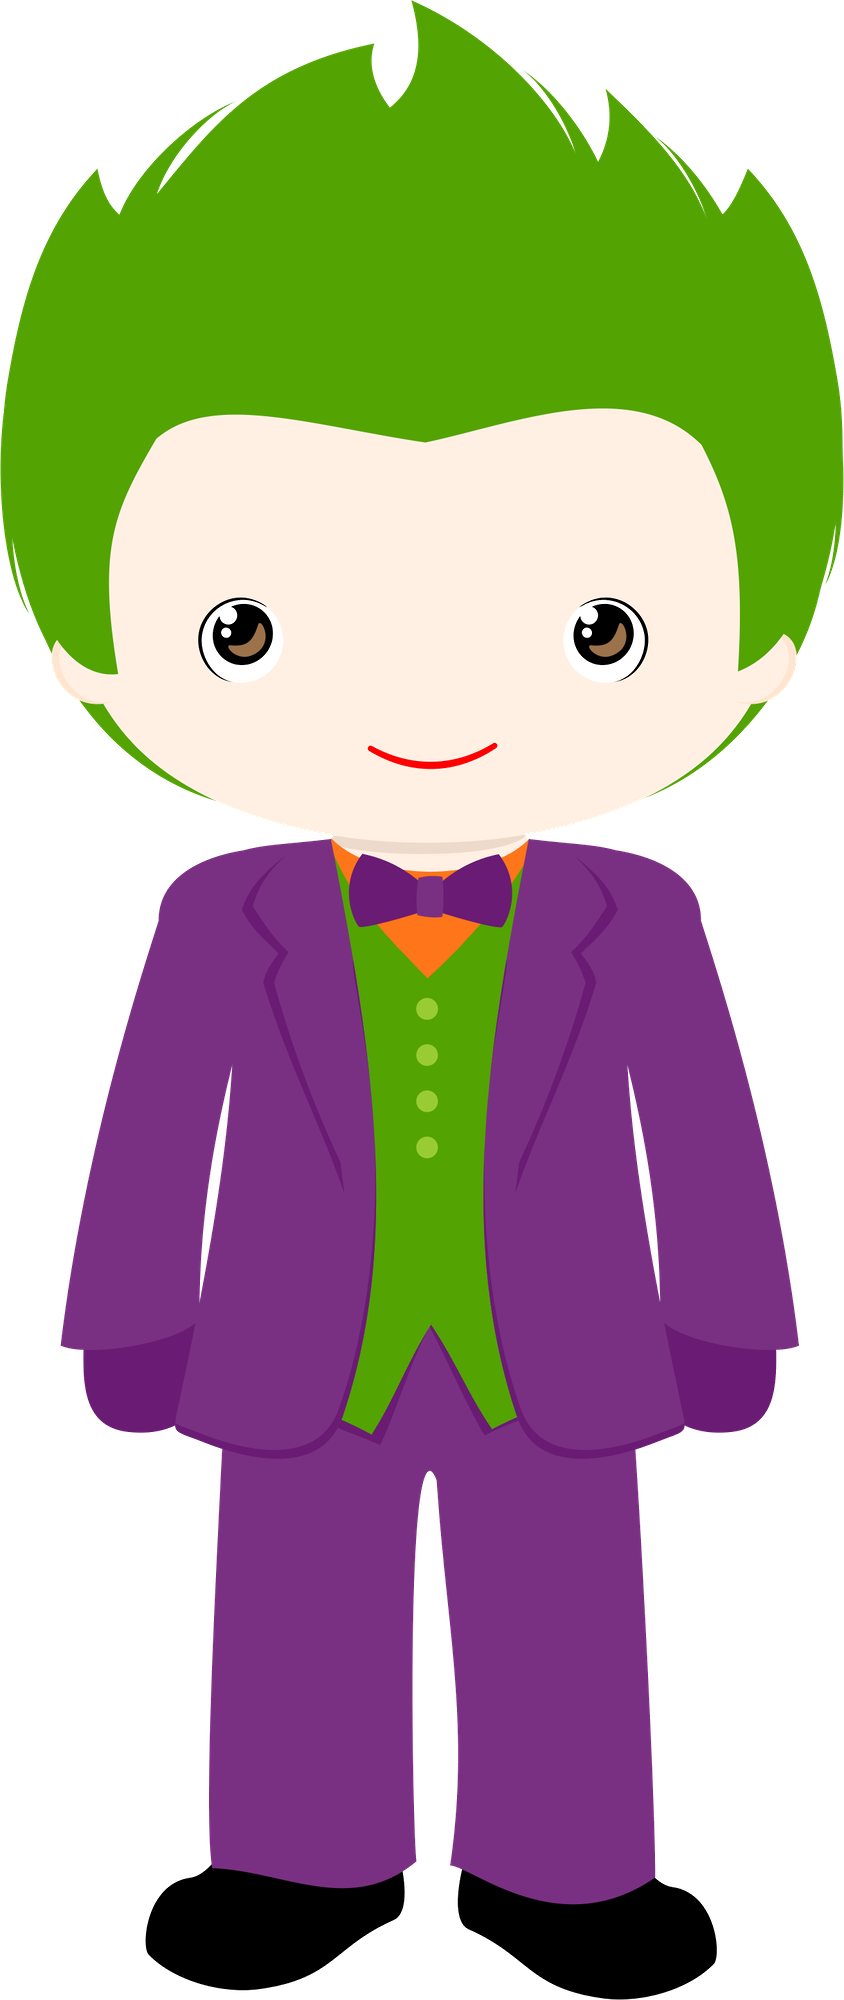 the joker cute images pinterest joker hero and superhero rh pinterest com joker clipart vector joker clipart batman